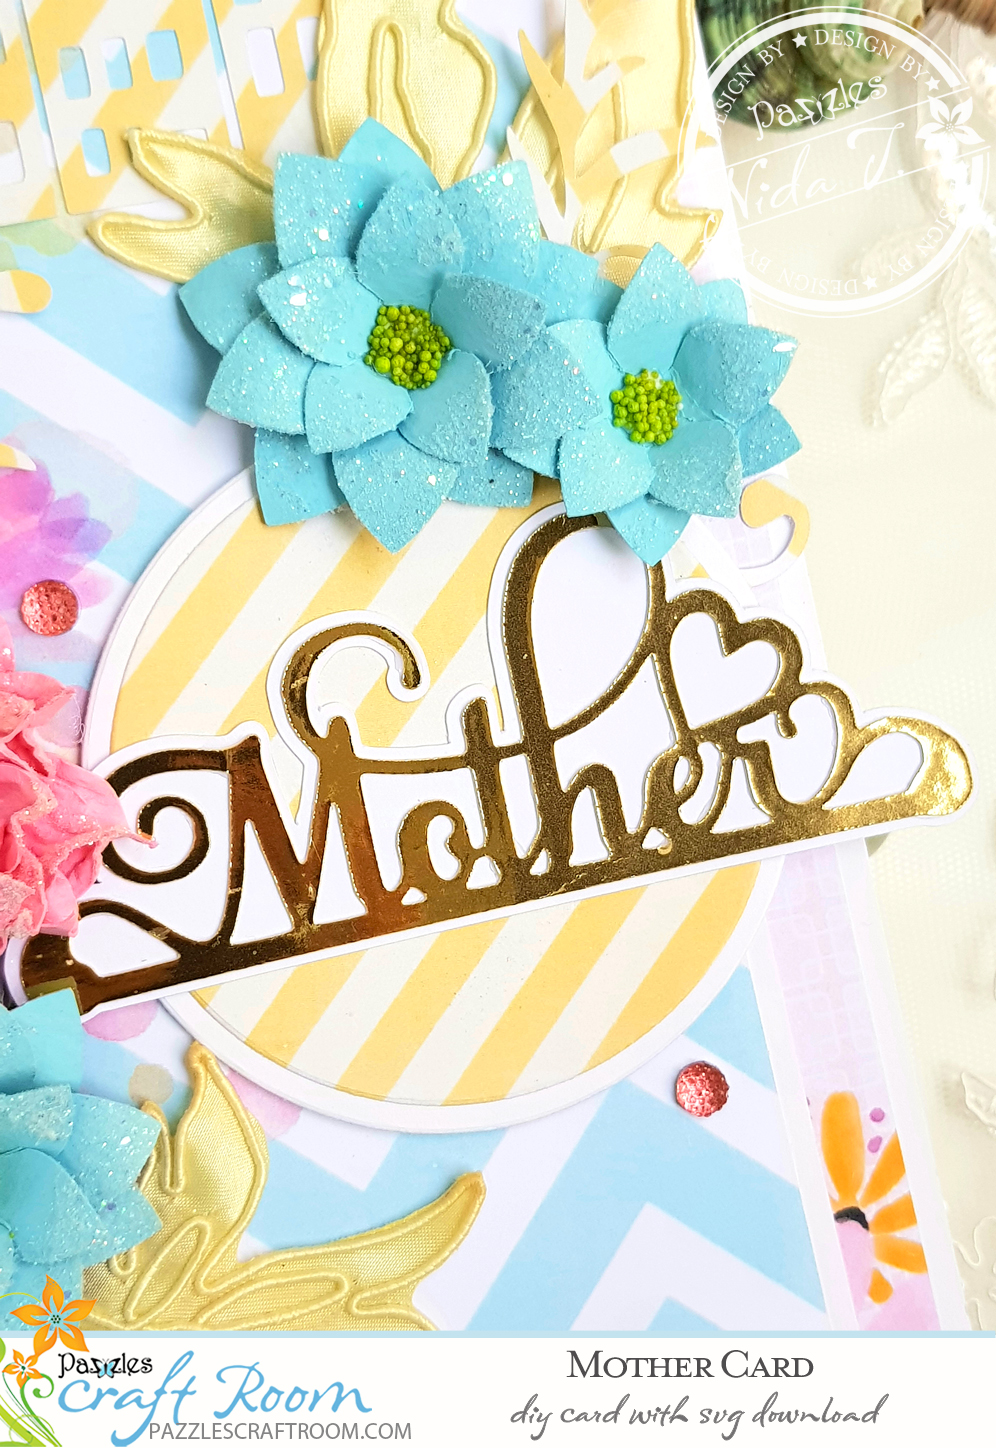 Pazzles DIY Mother's Day Card with instant SVG download. Compatible with all major electronic cutters including Pazzles Inspiration, Cricut, and Silhouette Cameo. Design by Nida Tanweer.